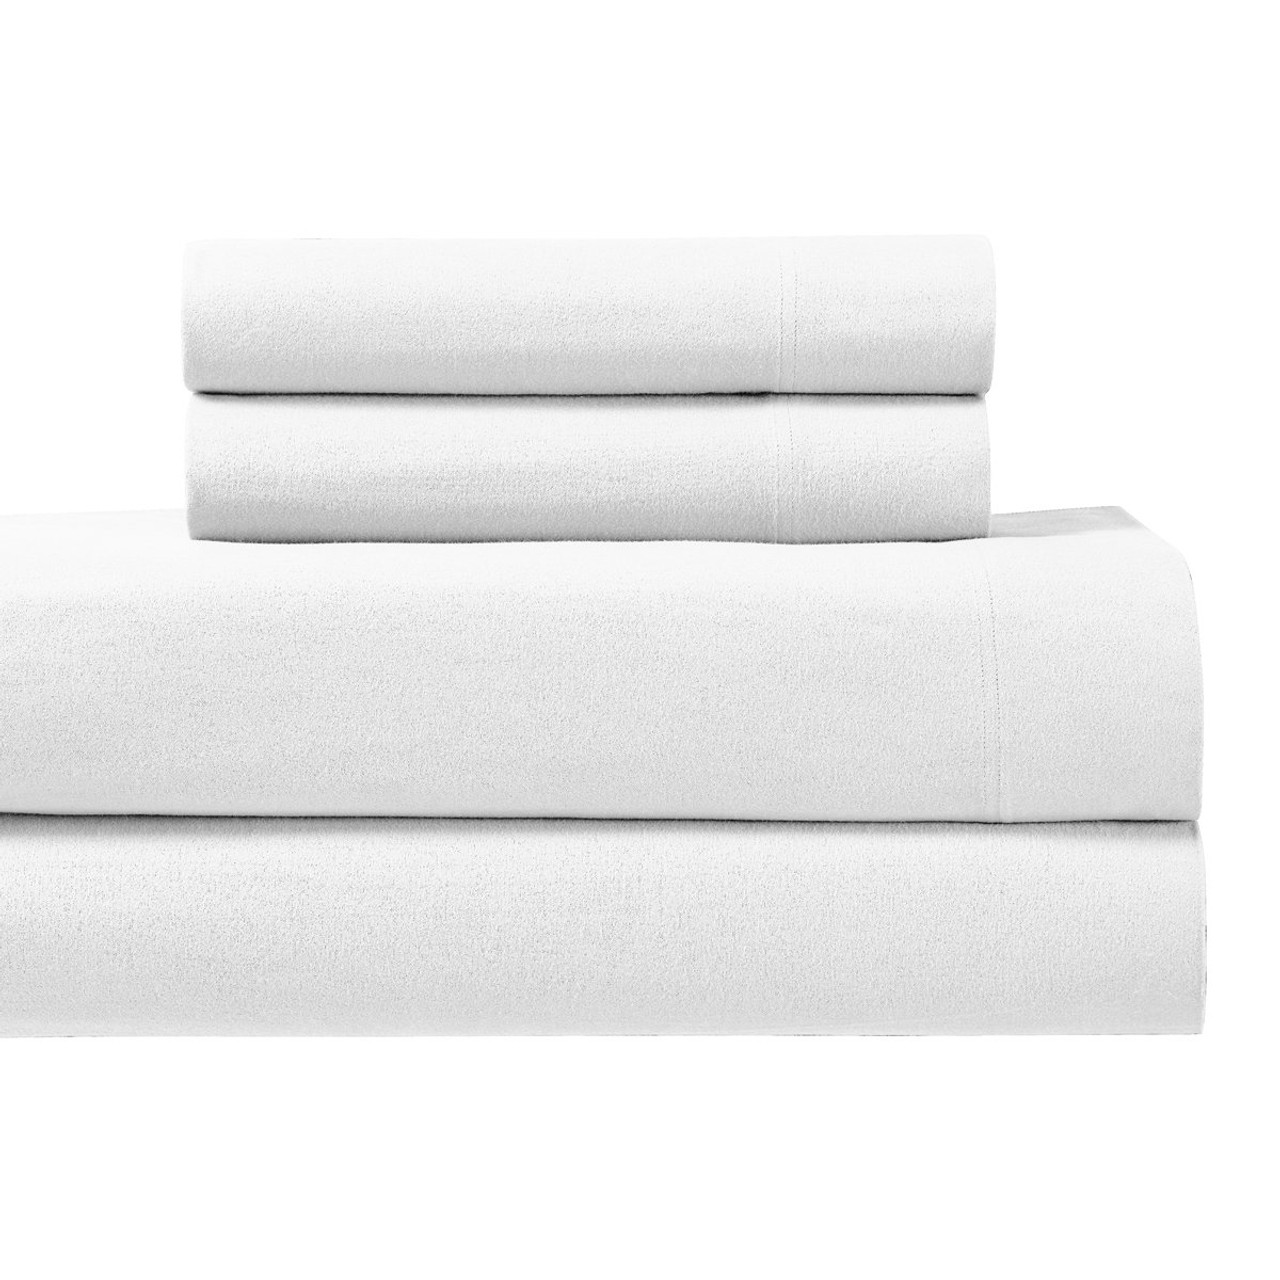 Split King Flannel Sheets For Adjustable Beds : Split king adjustable sheet set heavyweight cotton